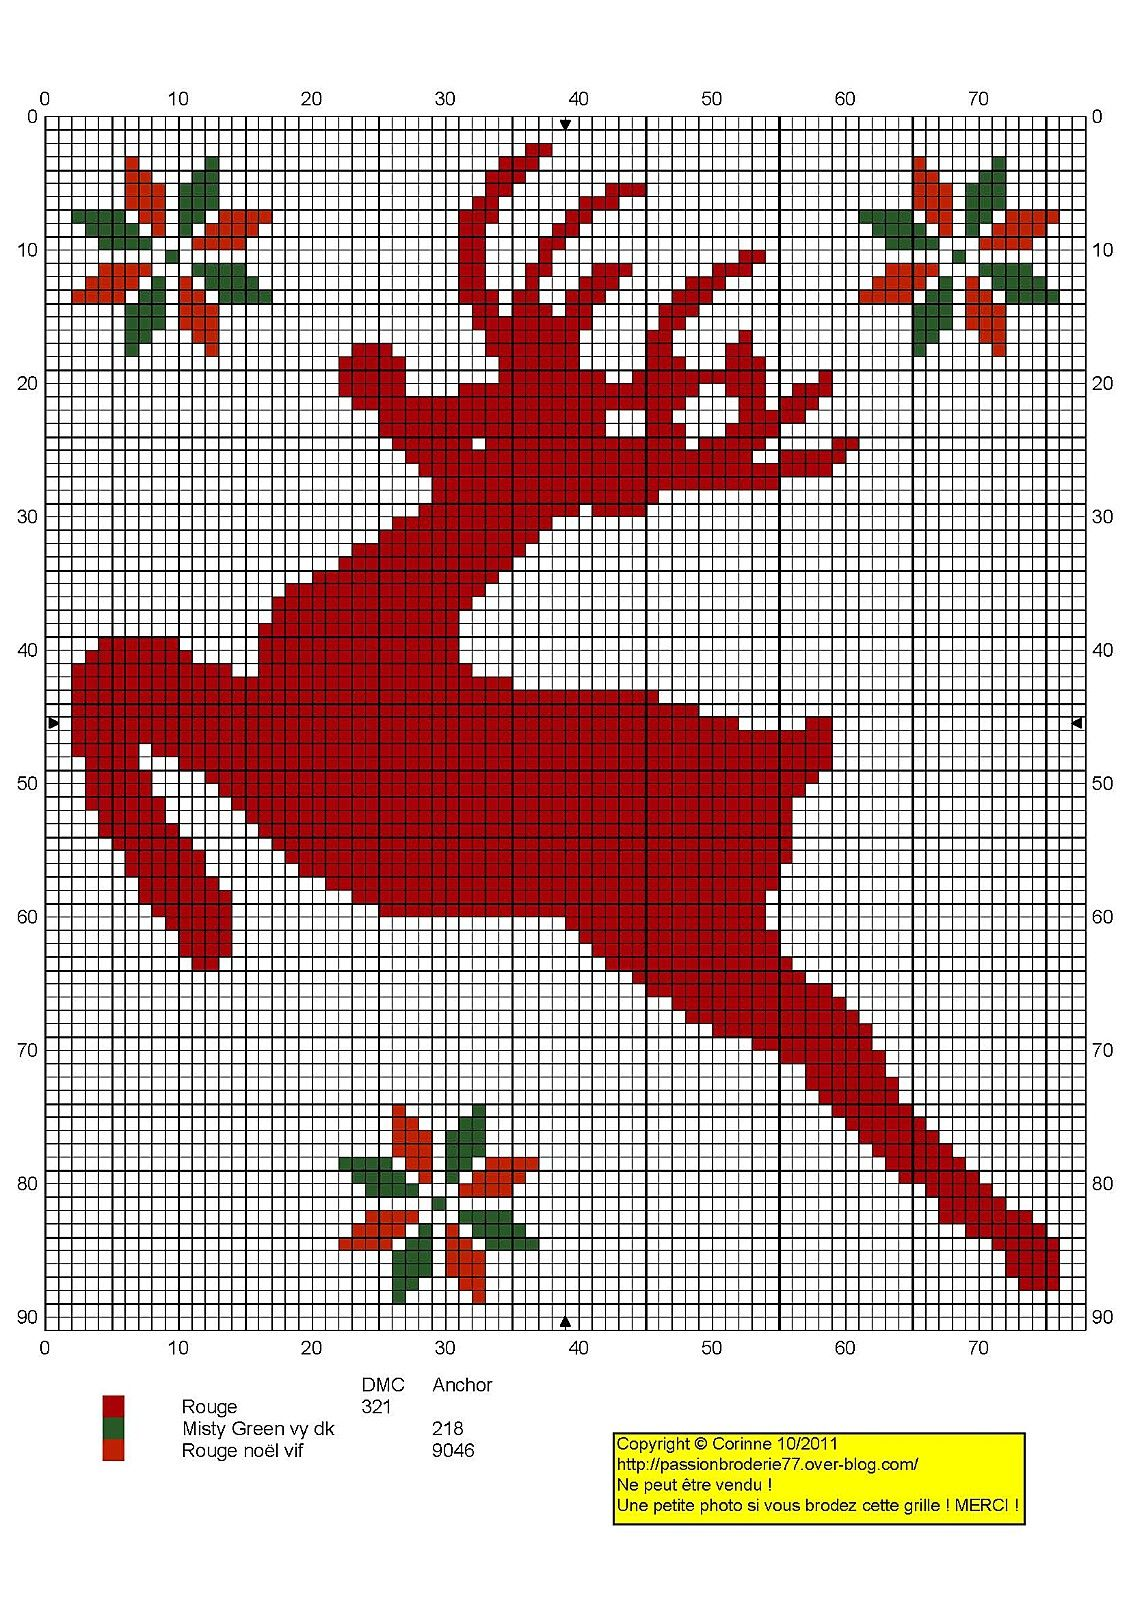 Point de croix -cross stitch ❤️✼❤️✼ Noël - Christmas Reindeer-1.jpg